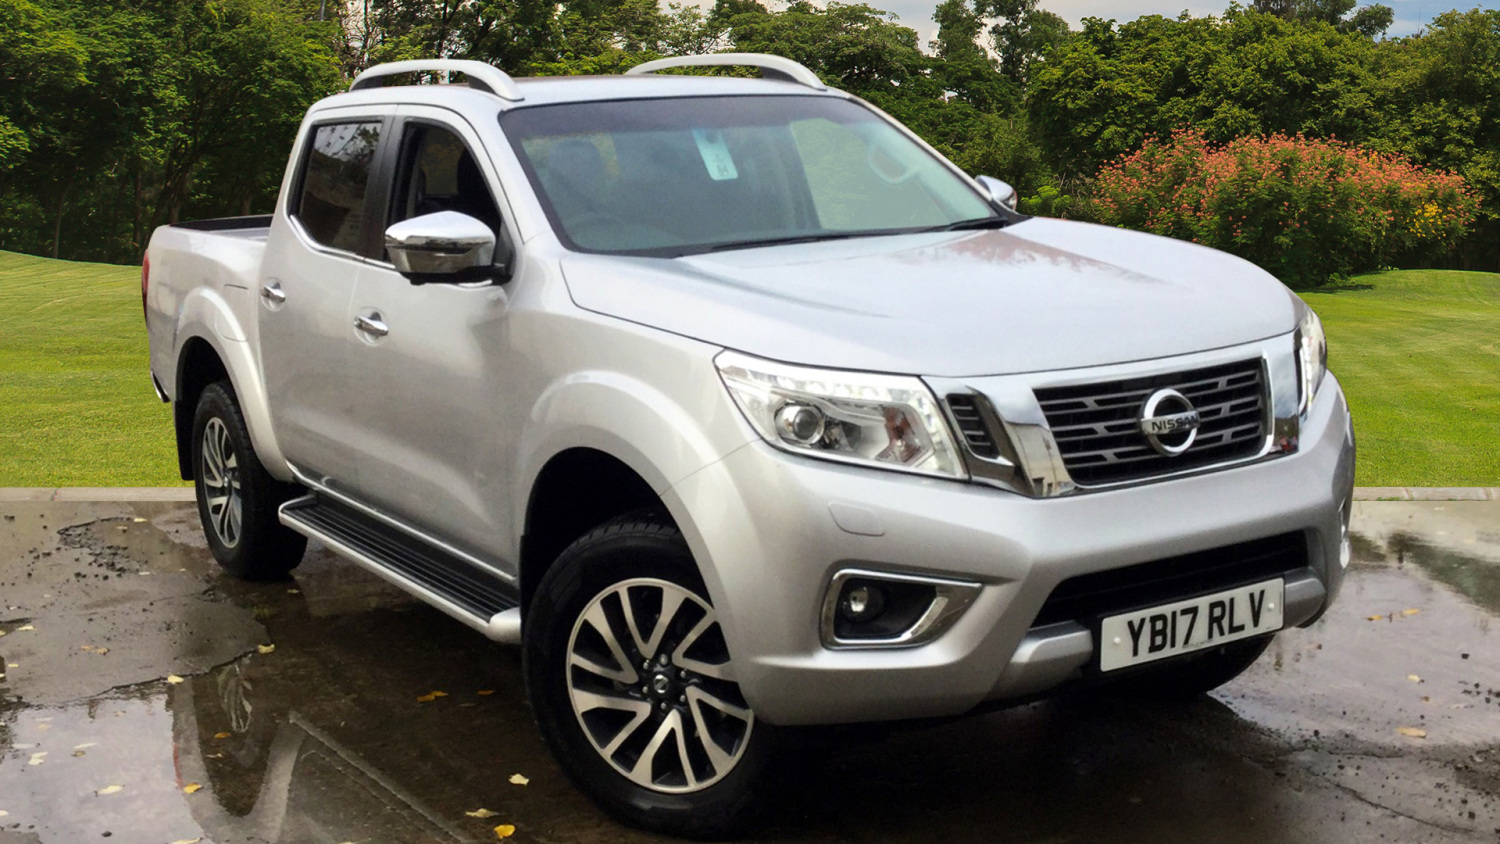 used nissan navara diesel double cab pick up tekna 2 3dci 190 4wd for sale vertu volkswagen. Black Bedroom Furniture Sets. Home Design Ideas